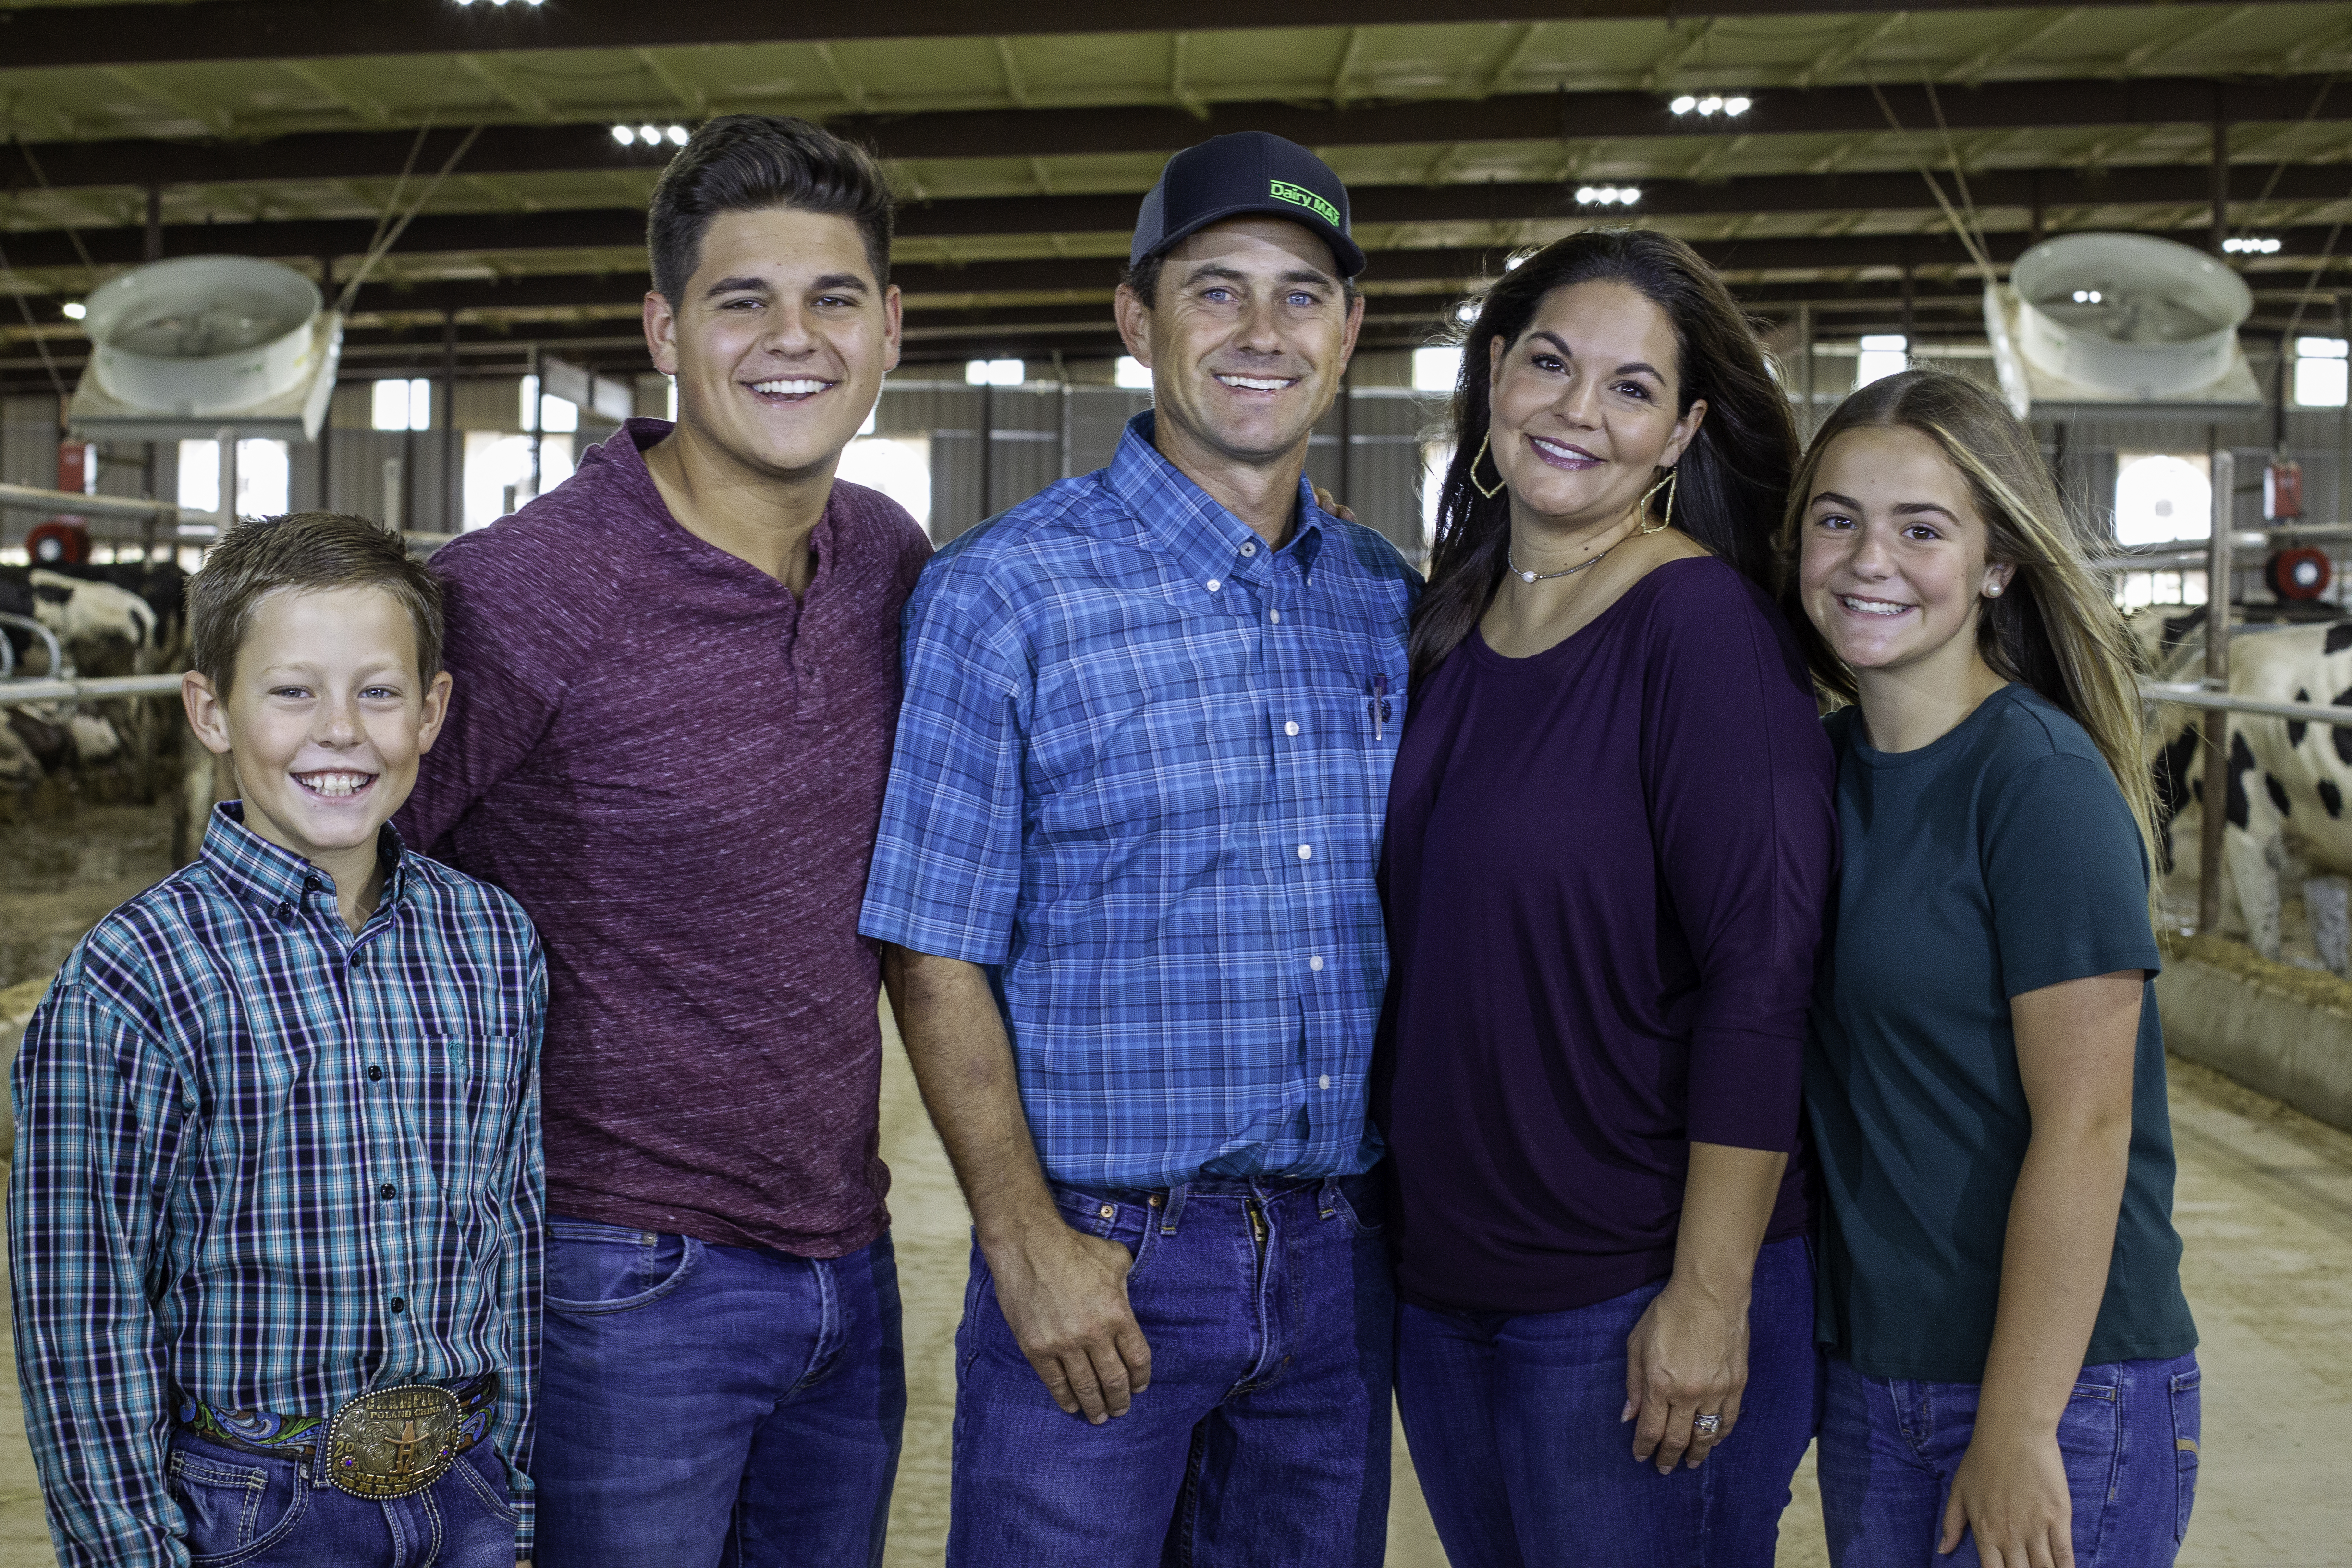 The Collier family poses for a photo in their barn.